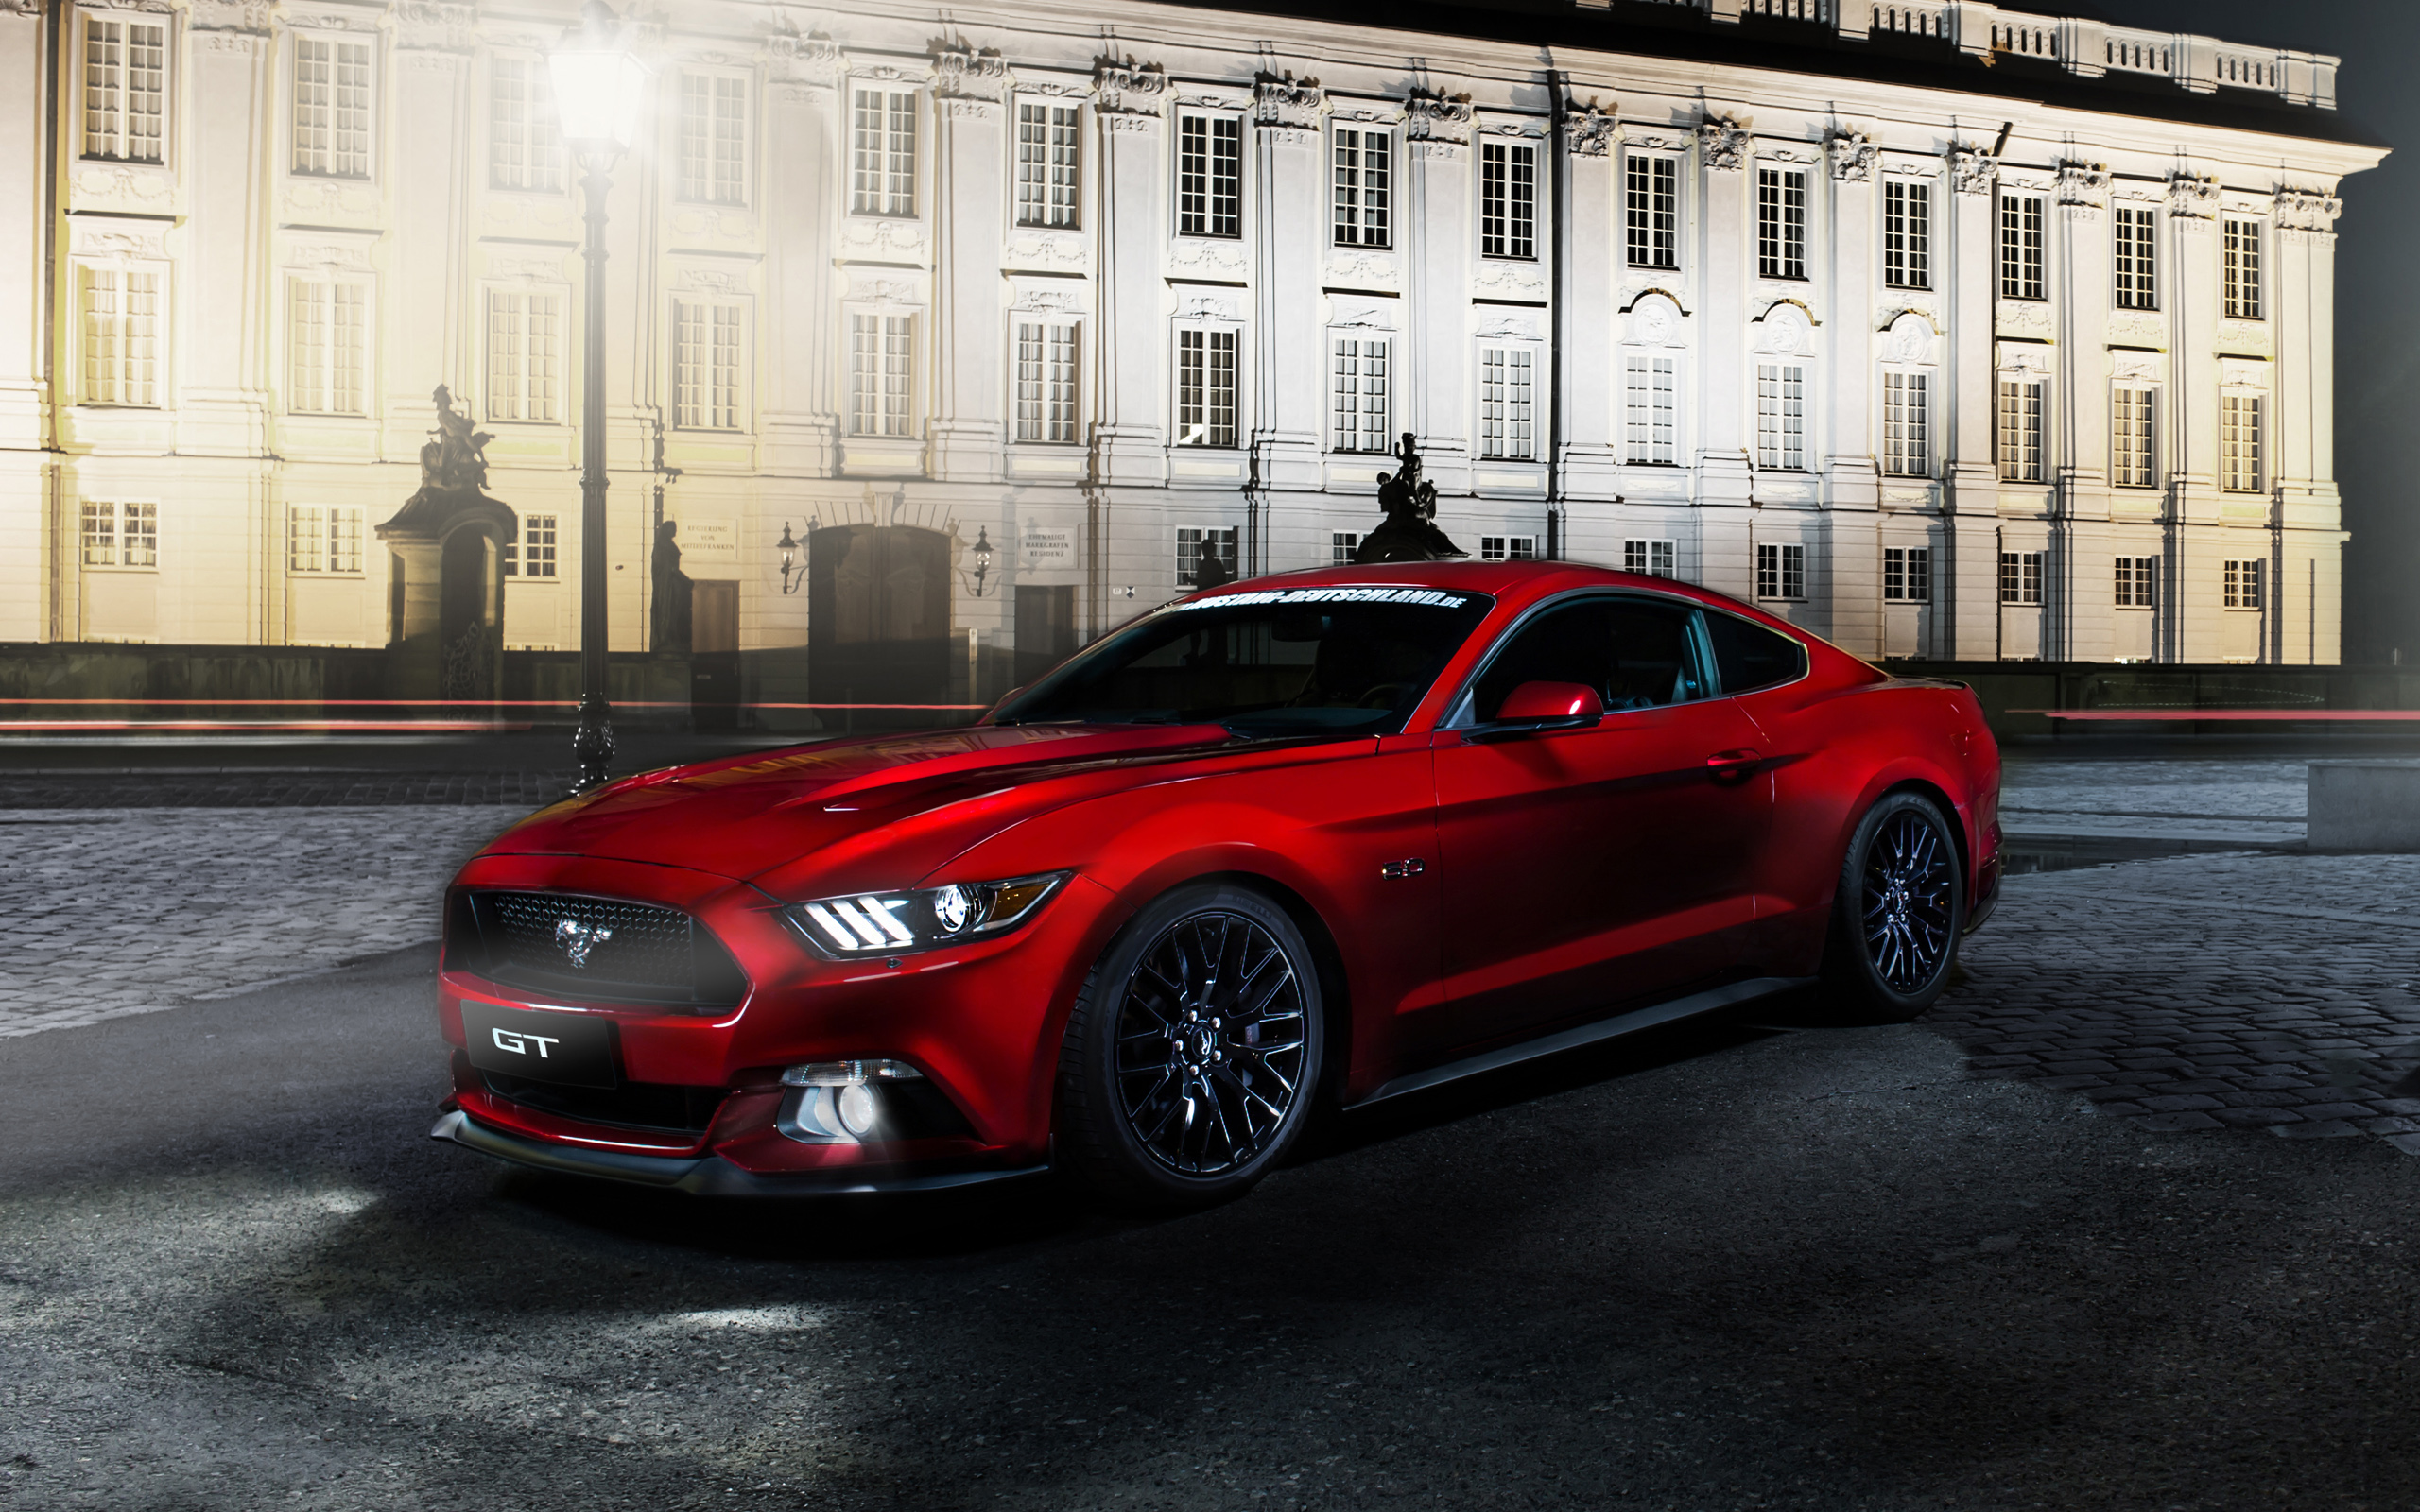 2560x1600 - Ford Mustang GT500 Wallpapers 23